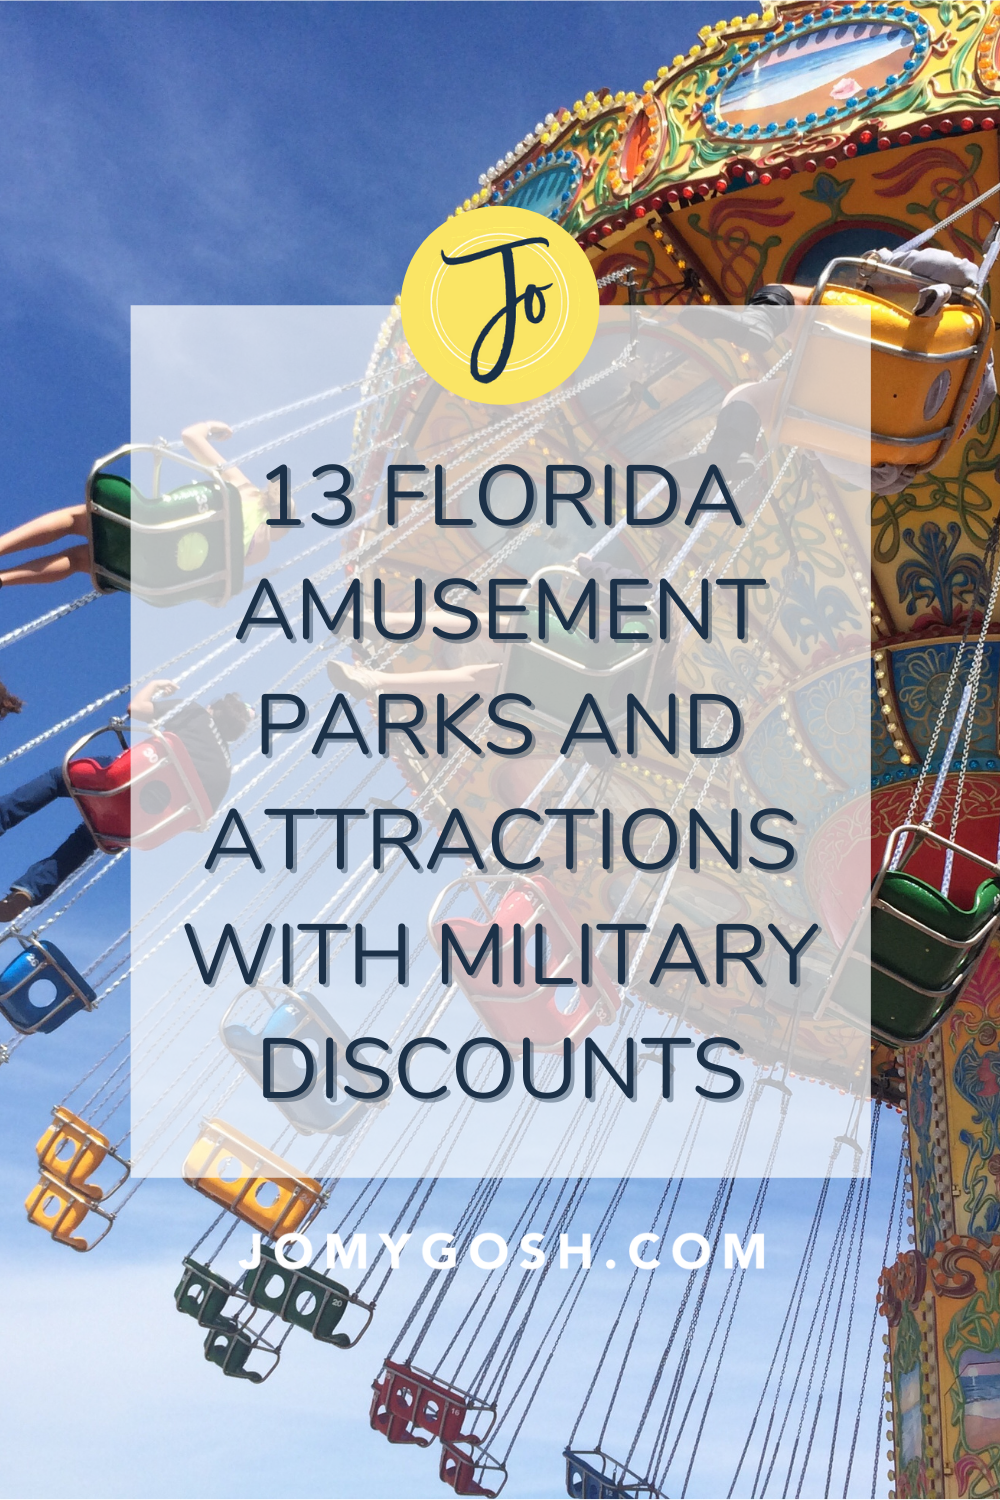 Live in Florida? Maybe you're traveling to the Sunshine State? Military families can take advantage of many discounts in amusement parks and attractions this summer (and throughout the year). And, believe it or not, those discounts extend to Disney World and other huge parks! #militaryfamily #milspouse #milfam #army #navy #airforce #marines #discounts #militarydiscount #freebies #savingmoney